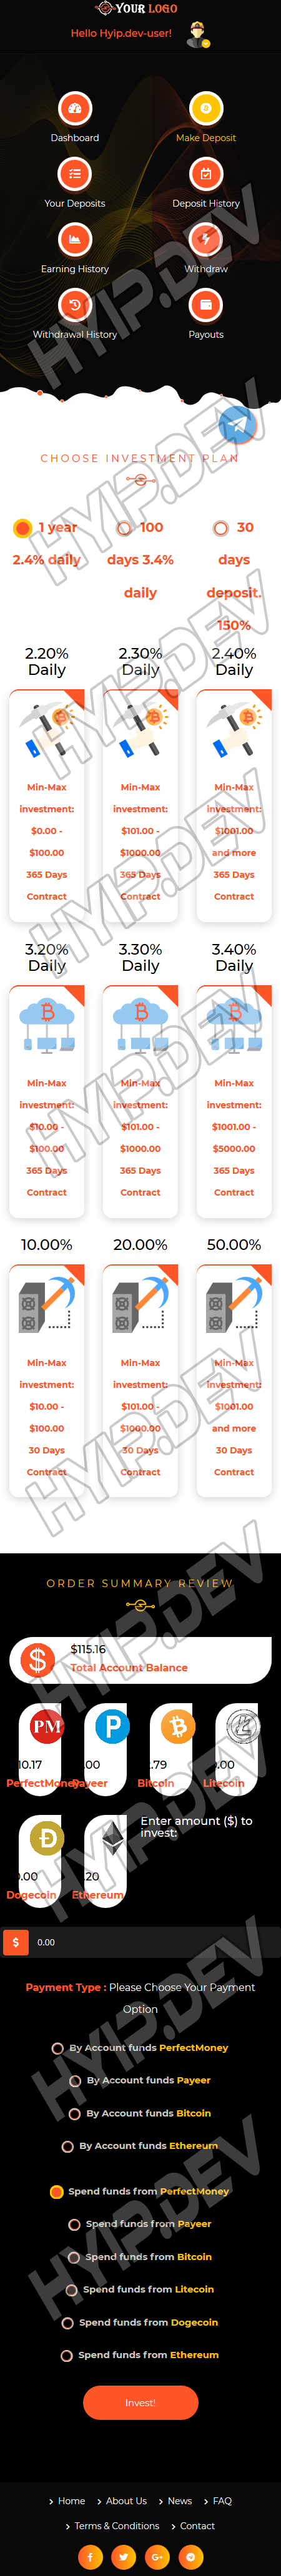 goldcoders hyip template no. 070, mobile page screenshot